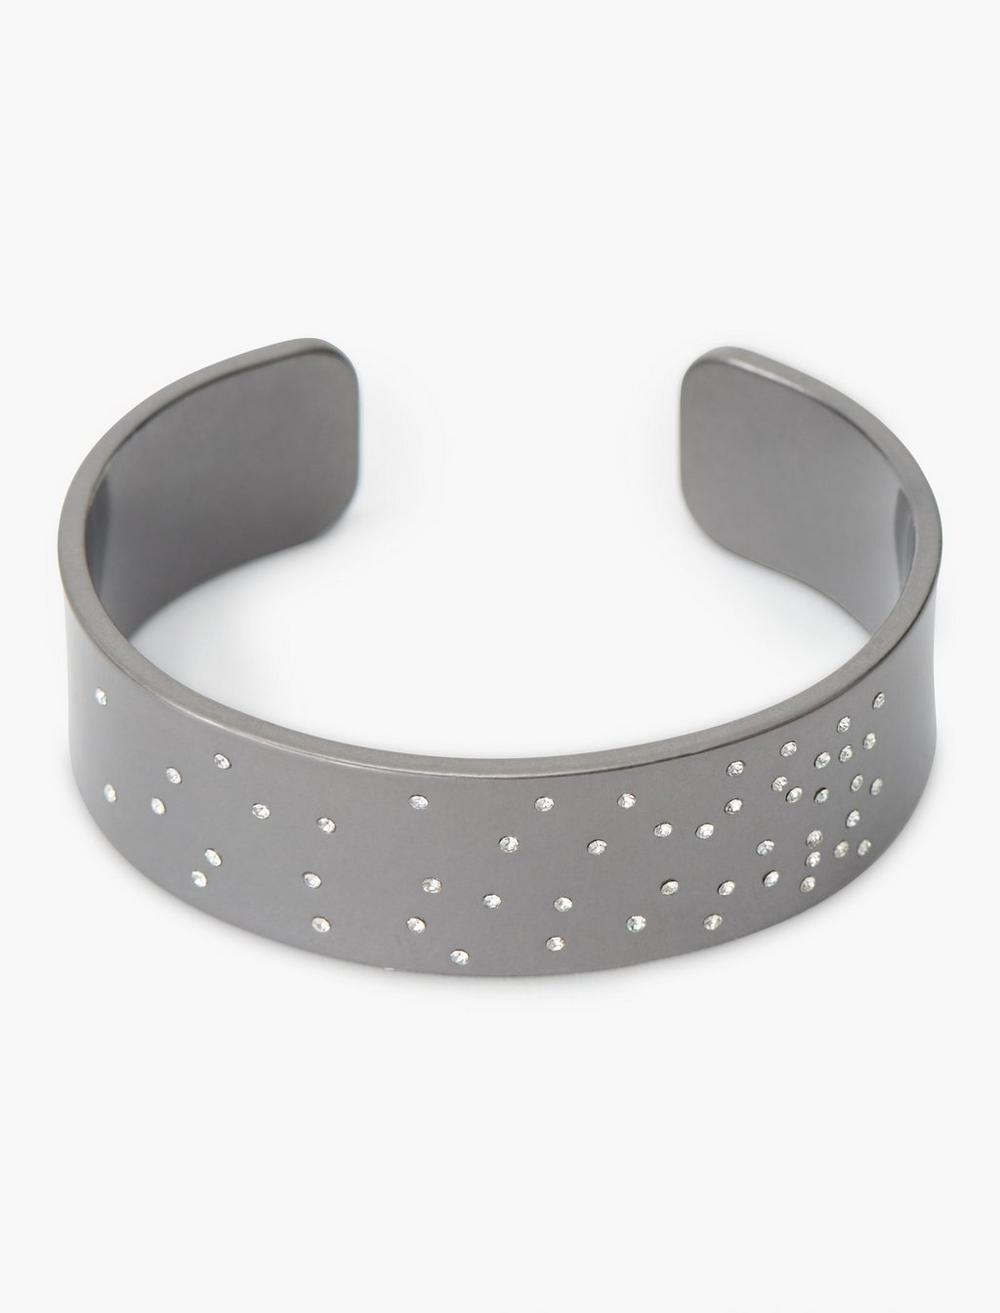 SCATTERED PAVE CUFF, image 4